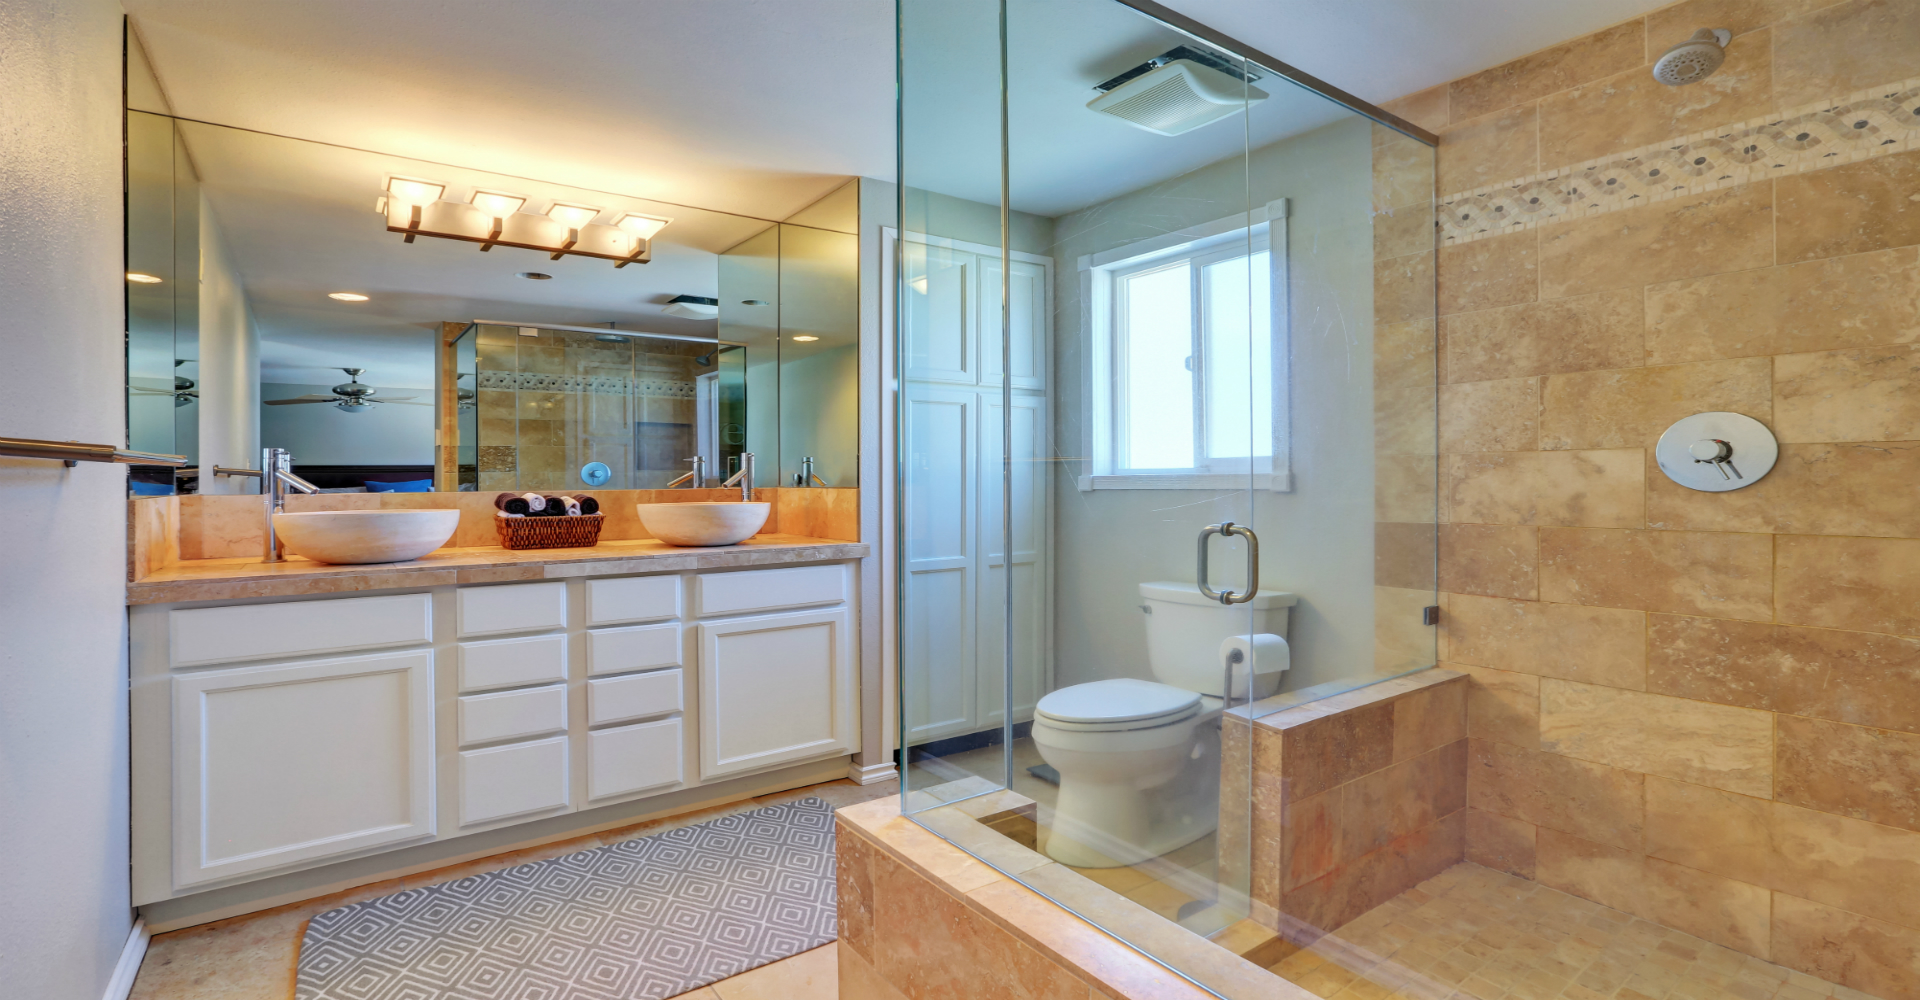 A Frameless Shower Door Mounting One On A Bathtub